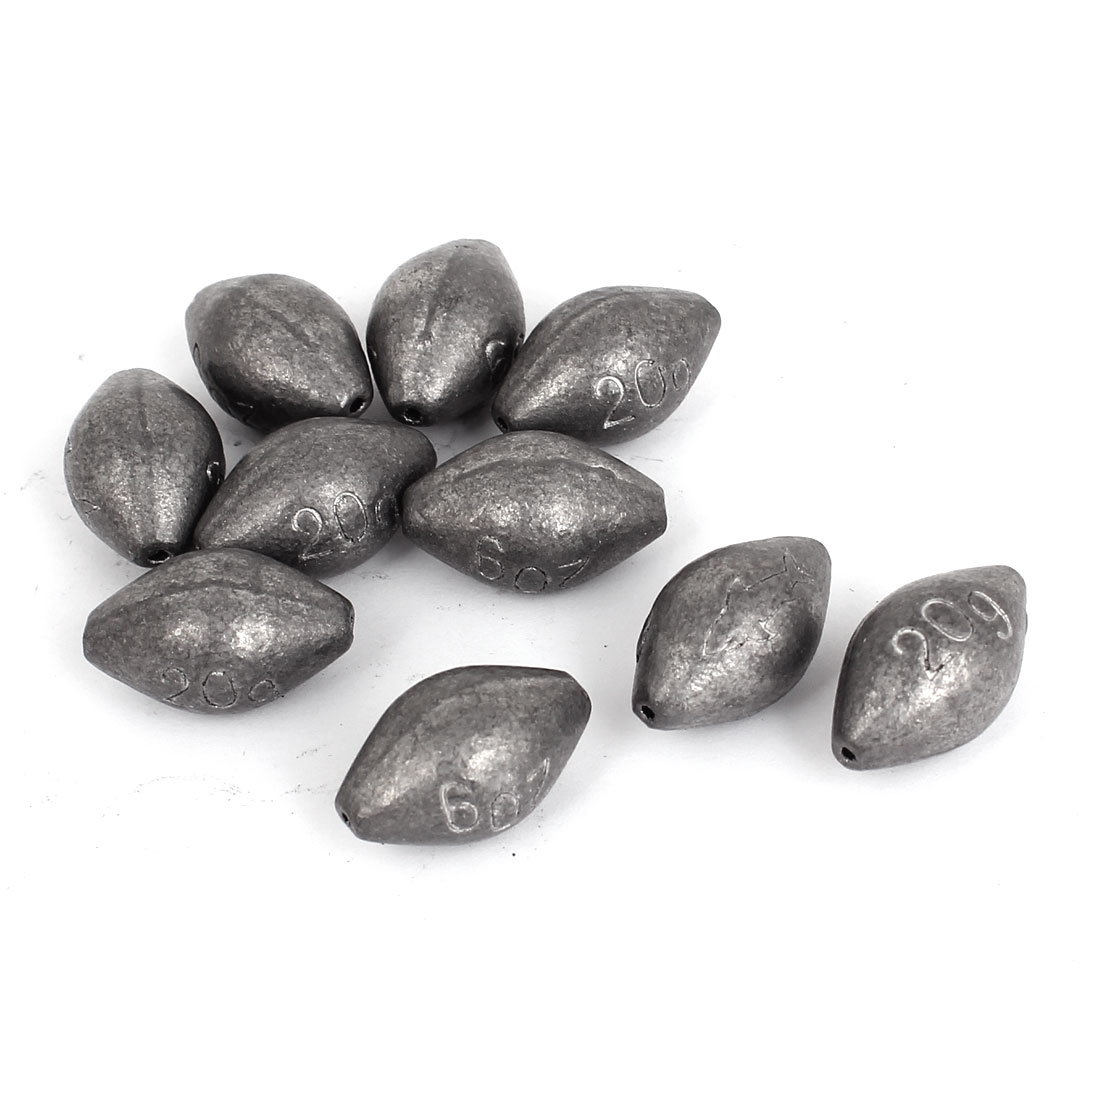 10 Pcs Gray Oval Shaped Lead Weight Sinker Fishing Split Shot 20g Per Piece